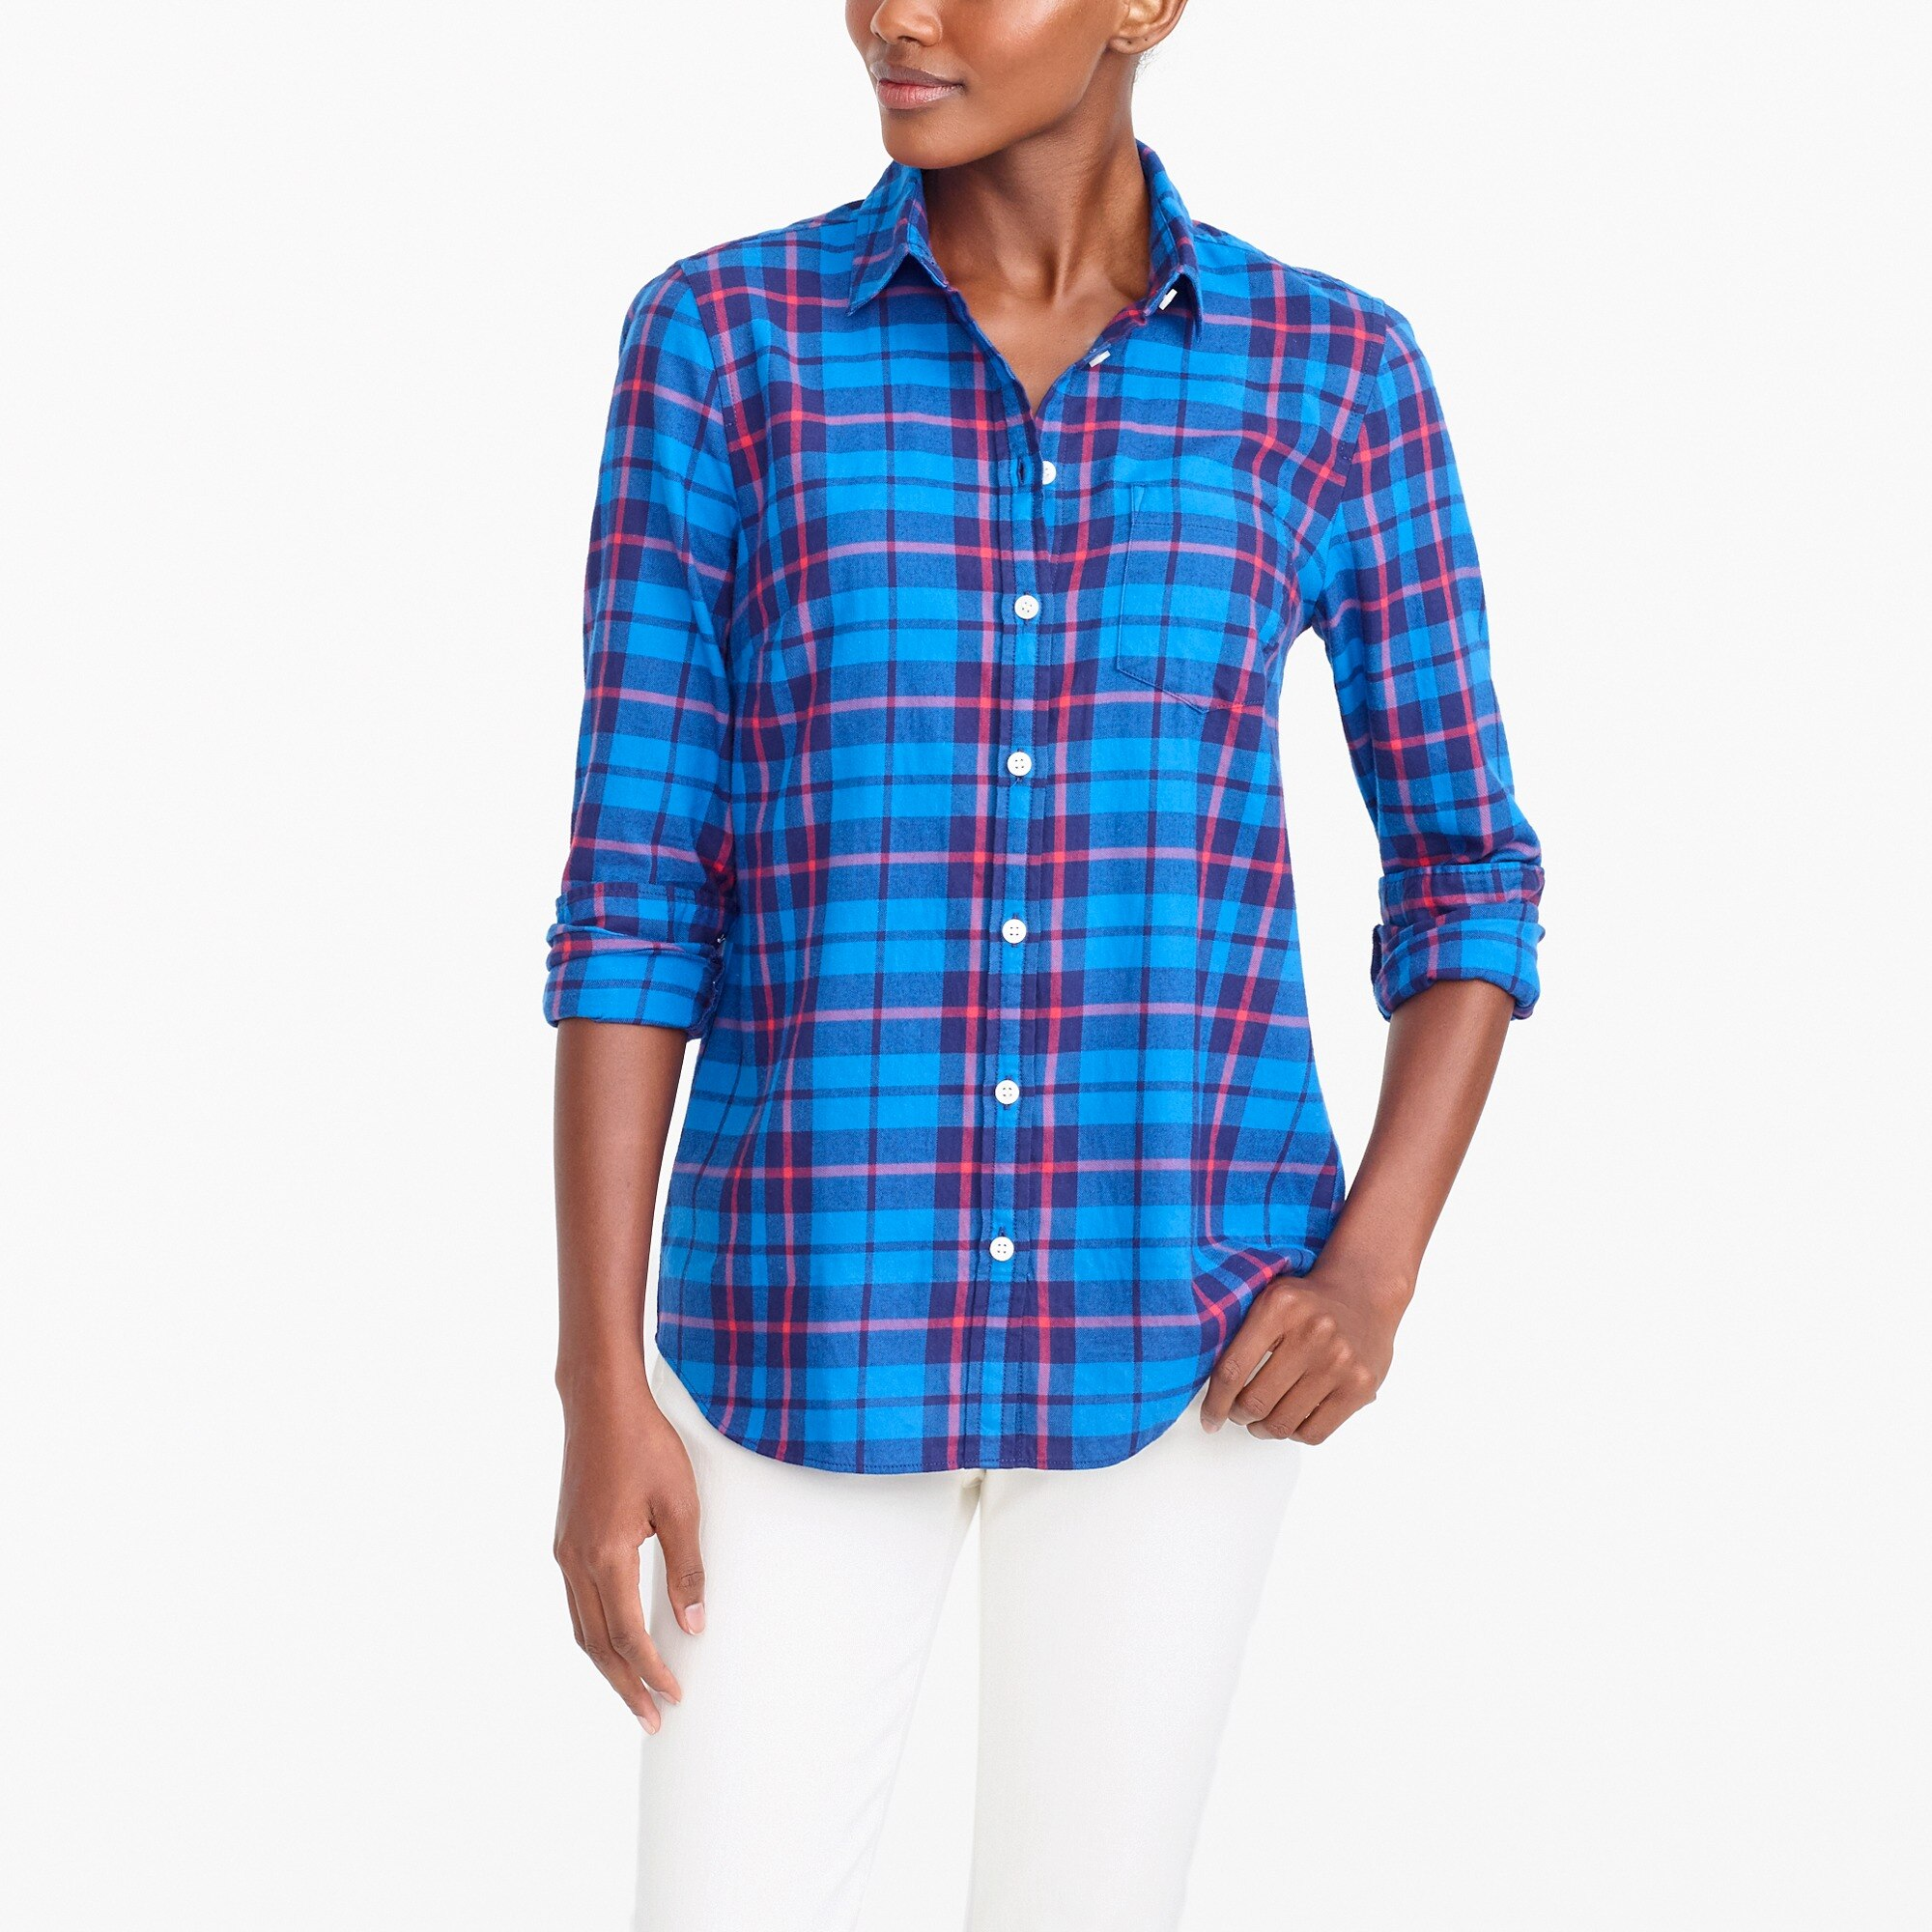 flannel shirt : factorywomen extra-nice list deals